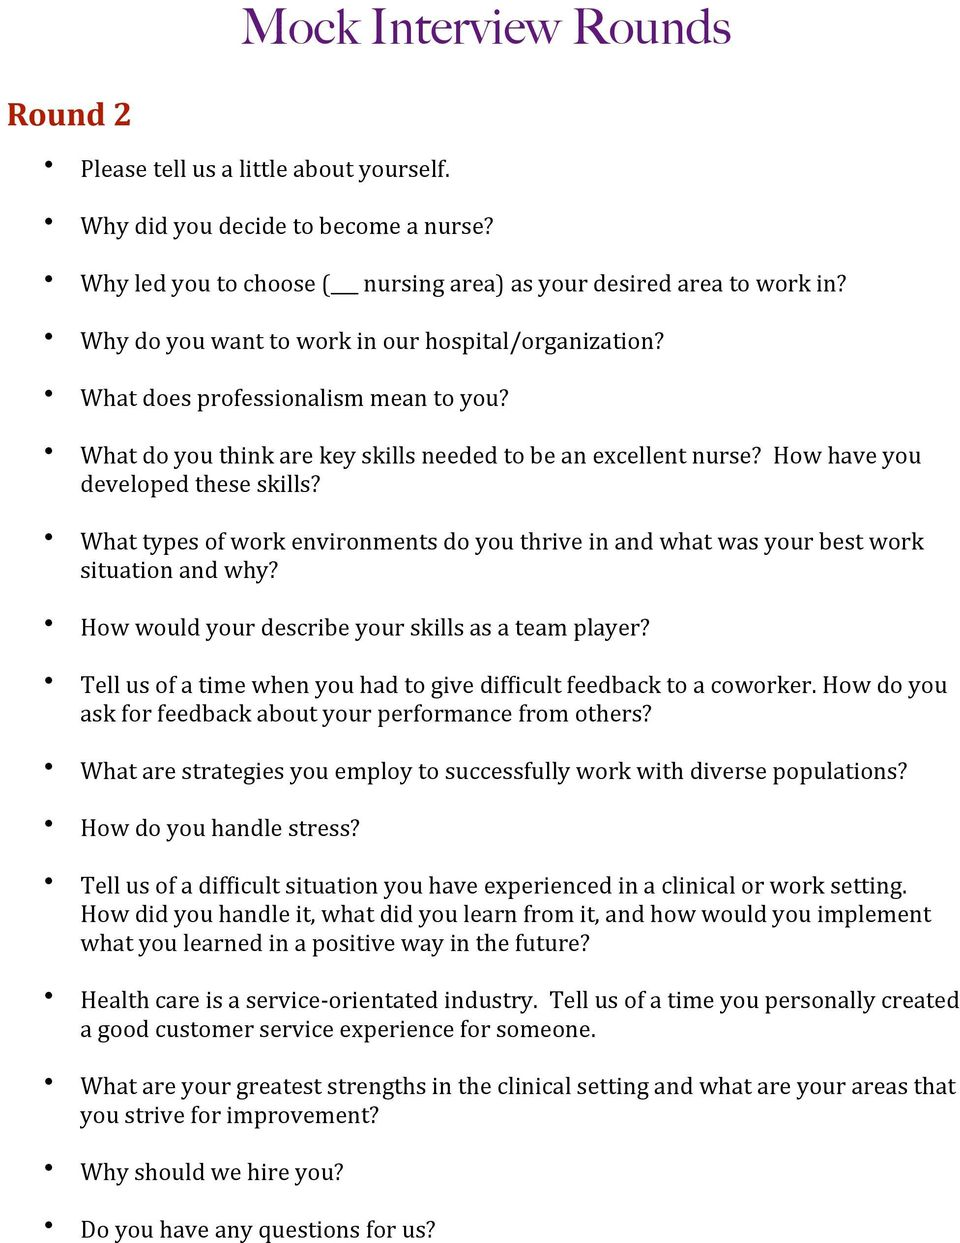 nursing interview success packet pdf what types of work environments do you thrive in and what was your best work situation